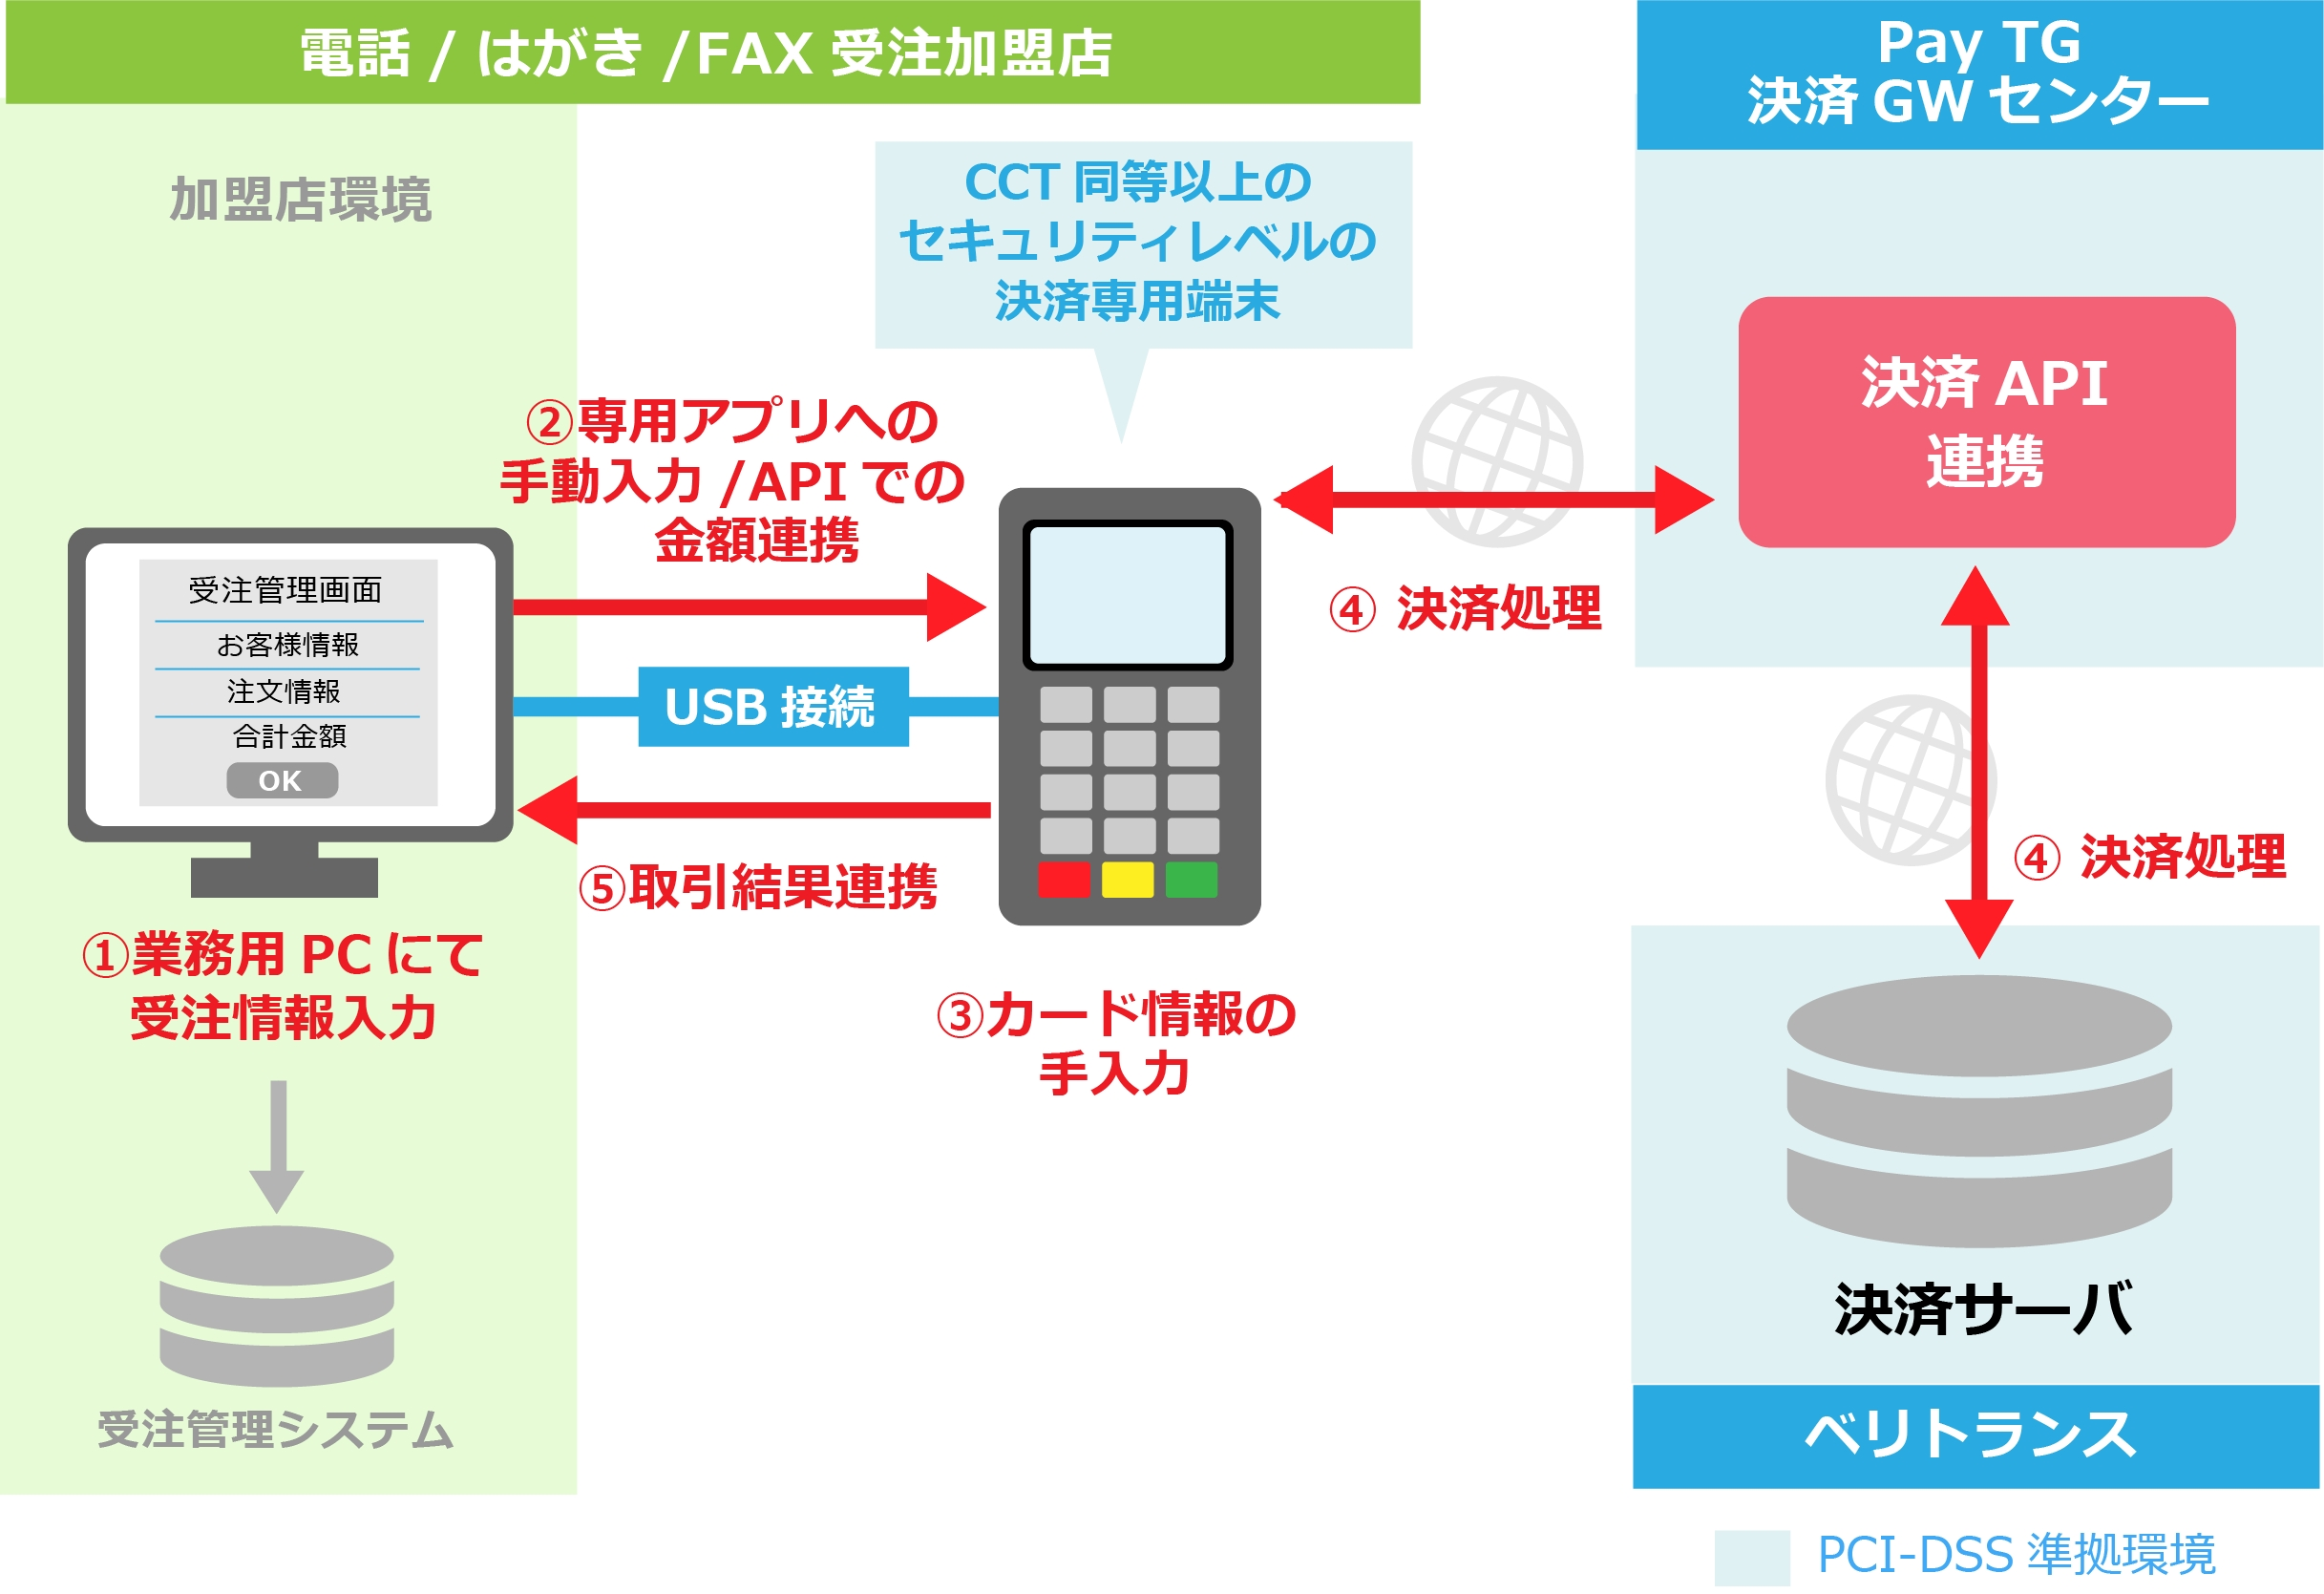 ベリトランス、電話・fax・はがき受注加盟店向けクレジットカード情報非保持化サービス「pay Tg」と2018年3月. Credit Card Balance Transfer Fee. Qualify For Credit Card Carolina Garage Doors. Smart Lipo Before And After Abdomen. Universities And Colleges In Florida. Teche Electric Baton Rouge Boca Raton Moving. U Haul Storage Austin Tx Find Insurance Quote. 24 Hour Plumber San Diego Home Purchase Rates. Las Vegas Limo Strip Tour Salary Of An Actor